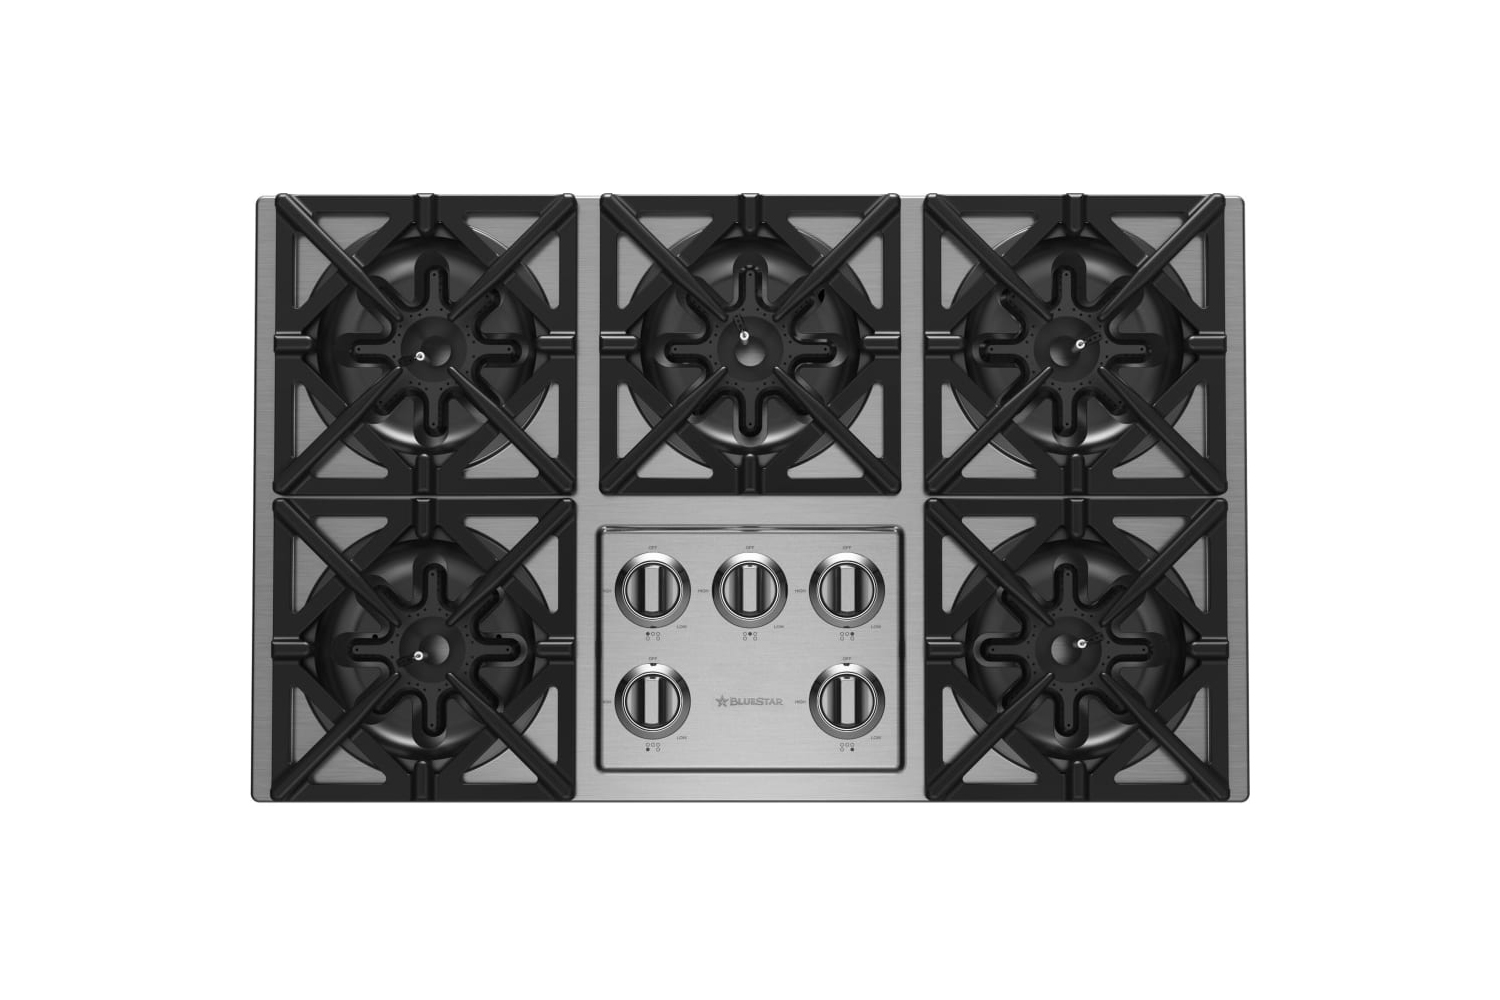 the bluestar 36 inch gas cooktop (rbct365bssv\2l) is \$\2,795 at aj madison. 12